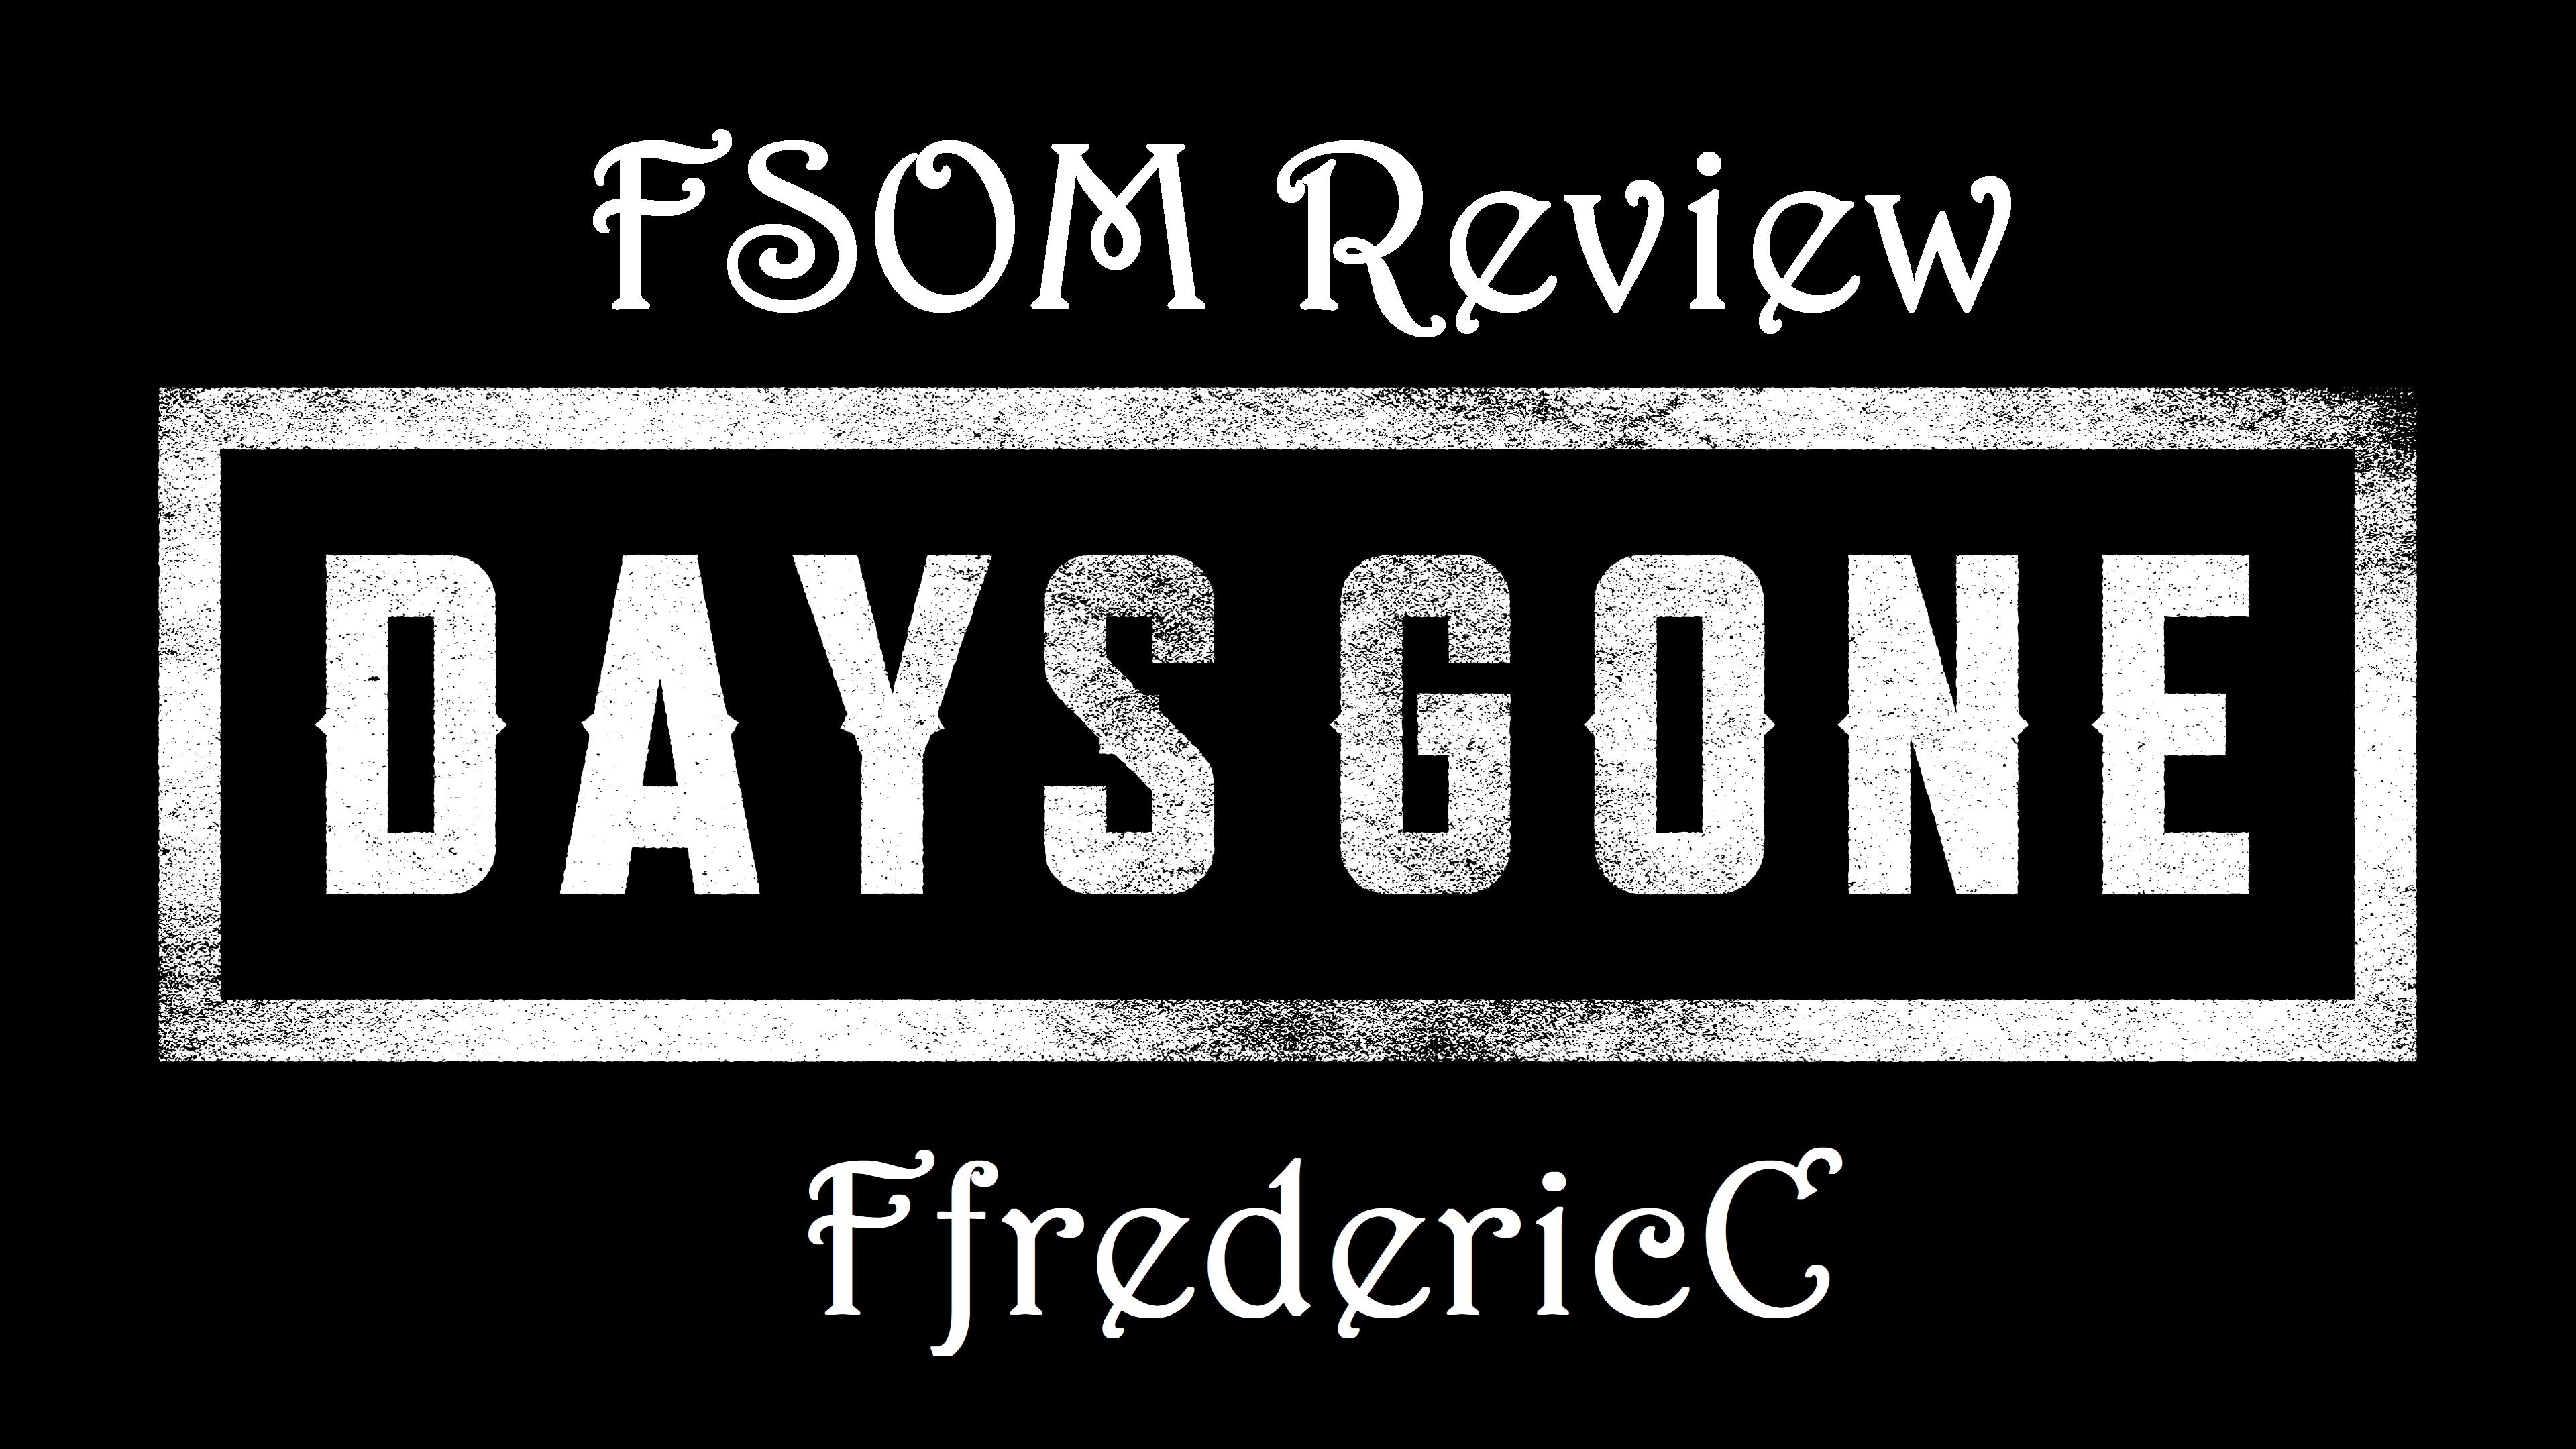 Days Gone – The FfredericC Review